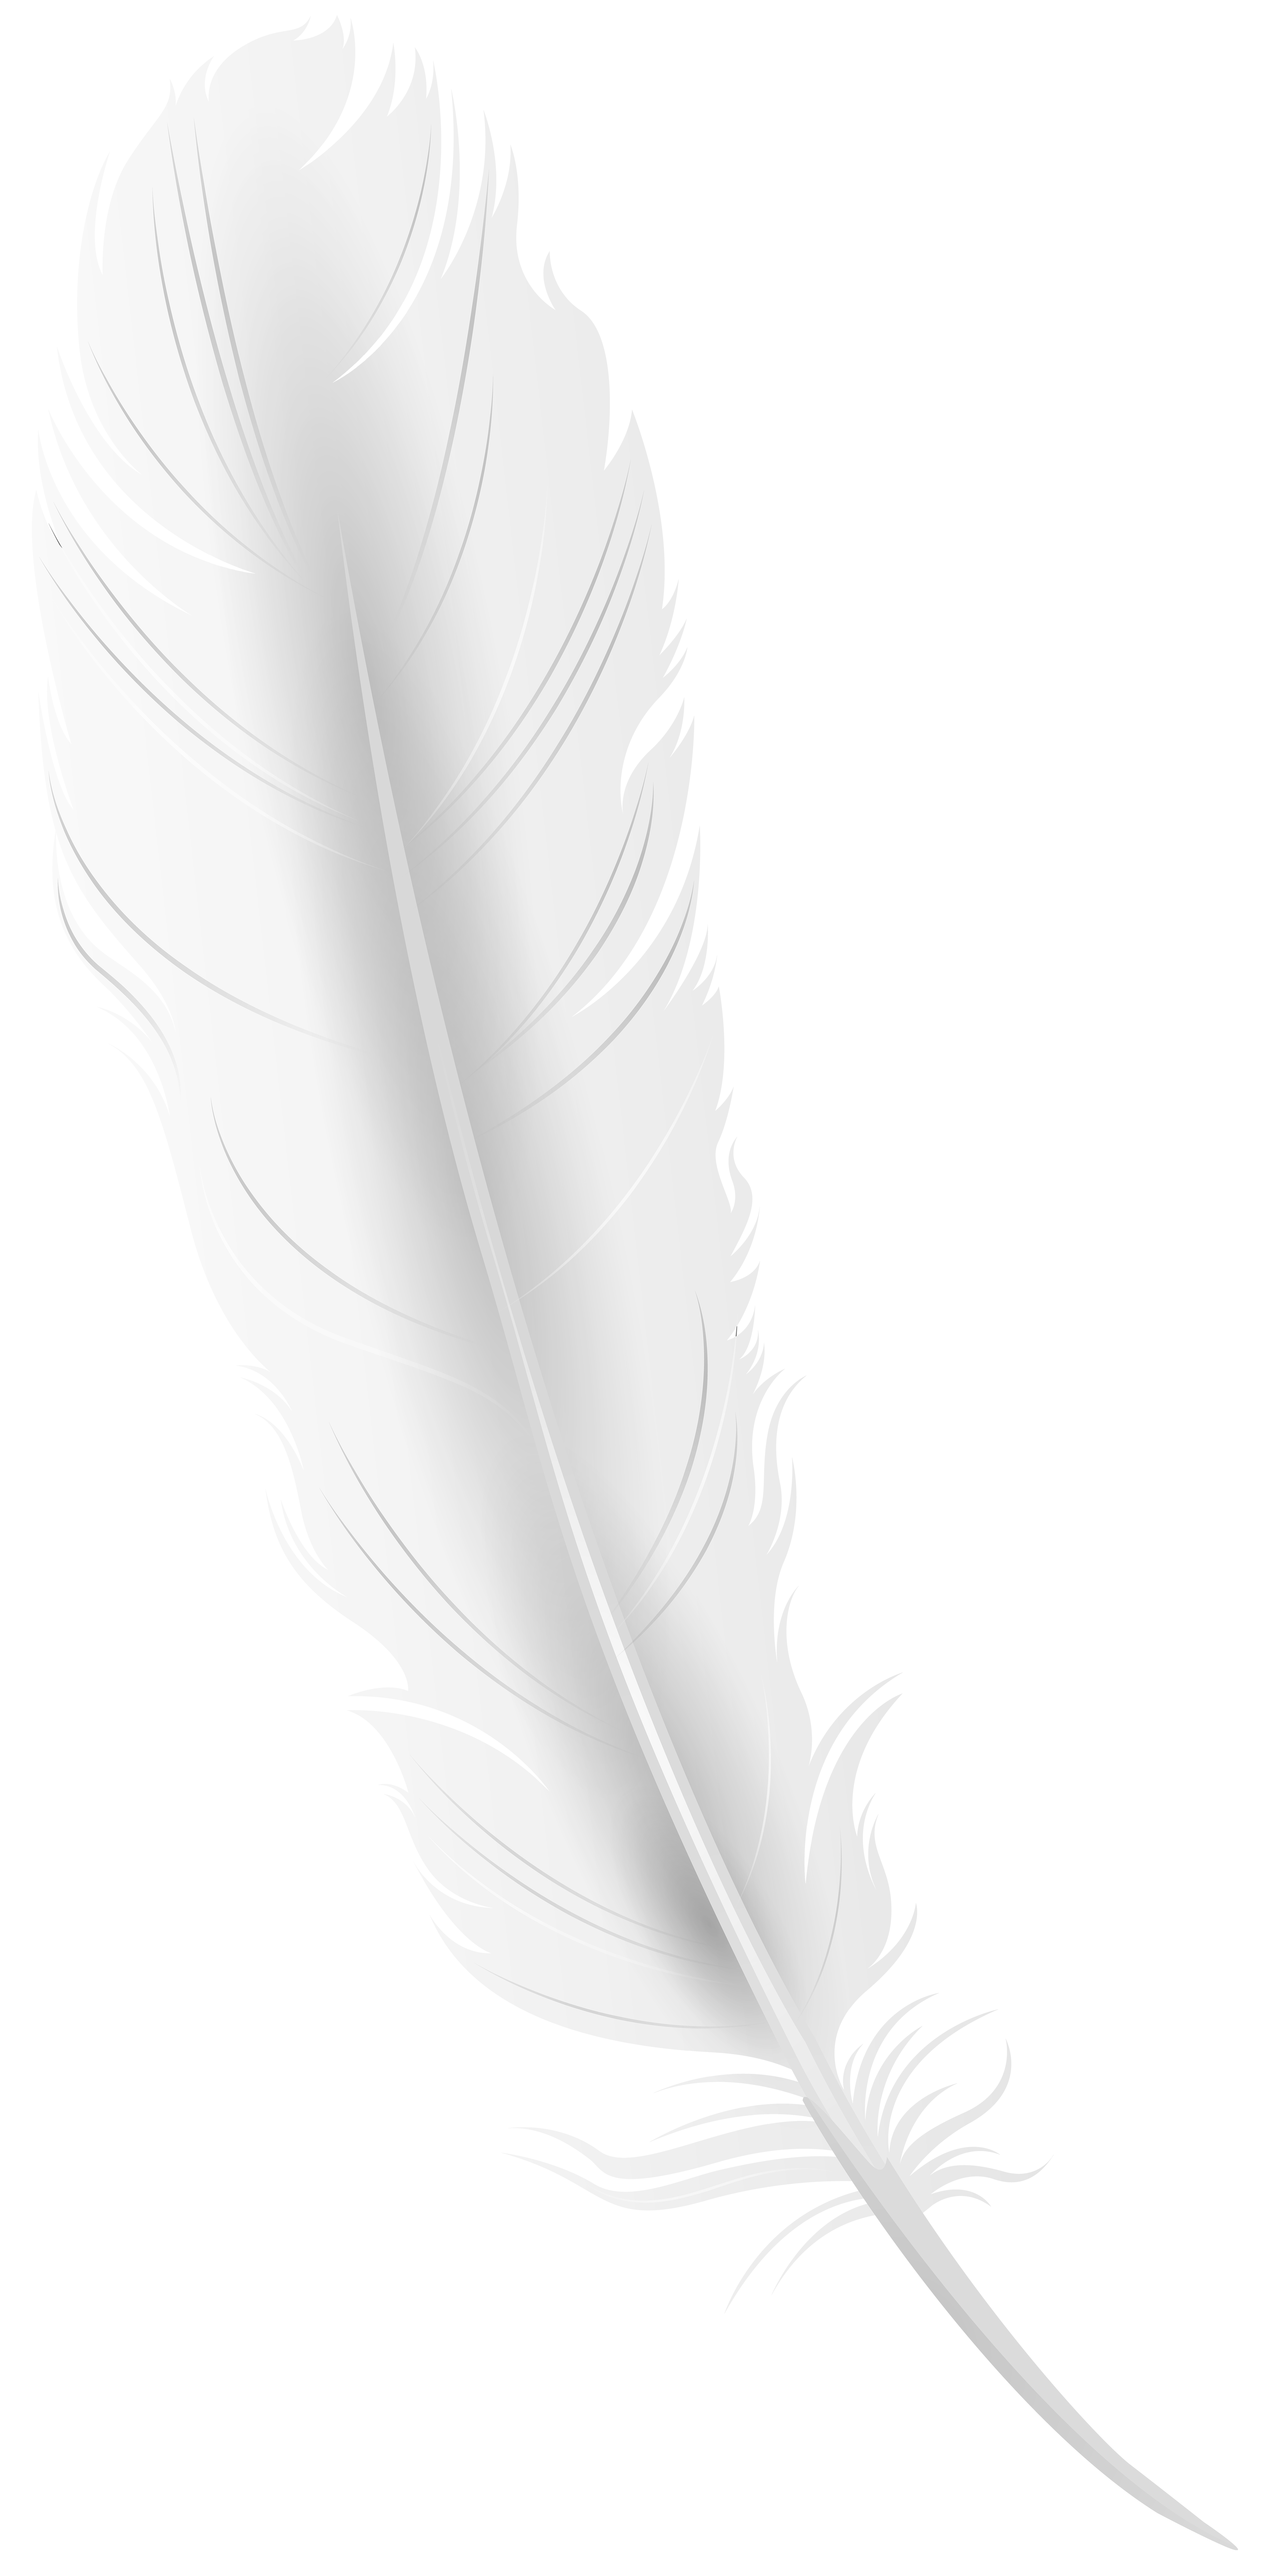 White feather png. Clip art image gallery